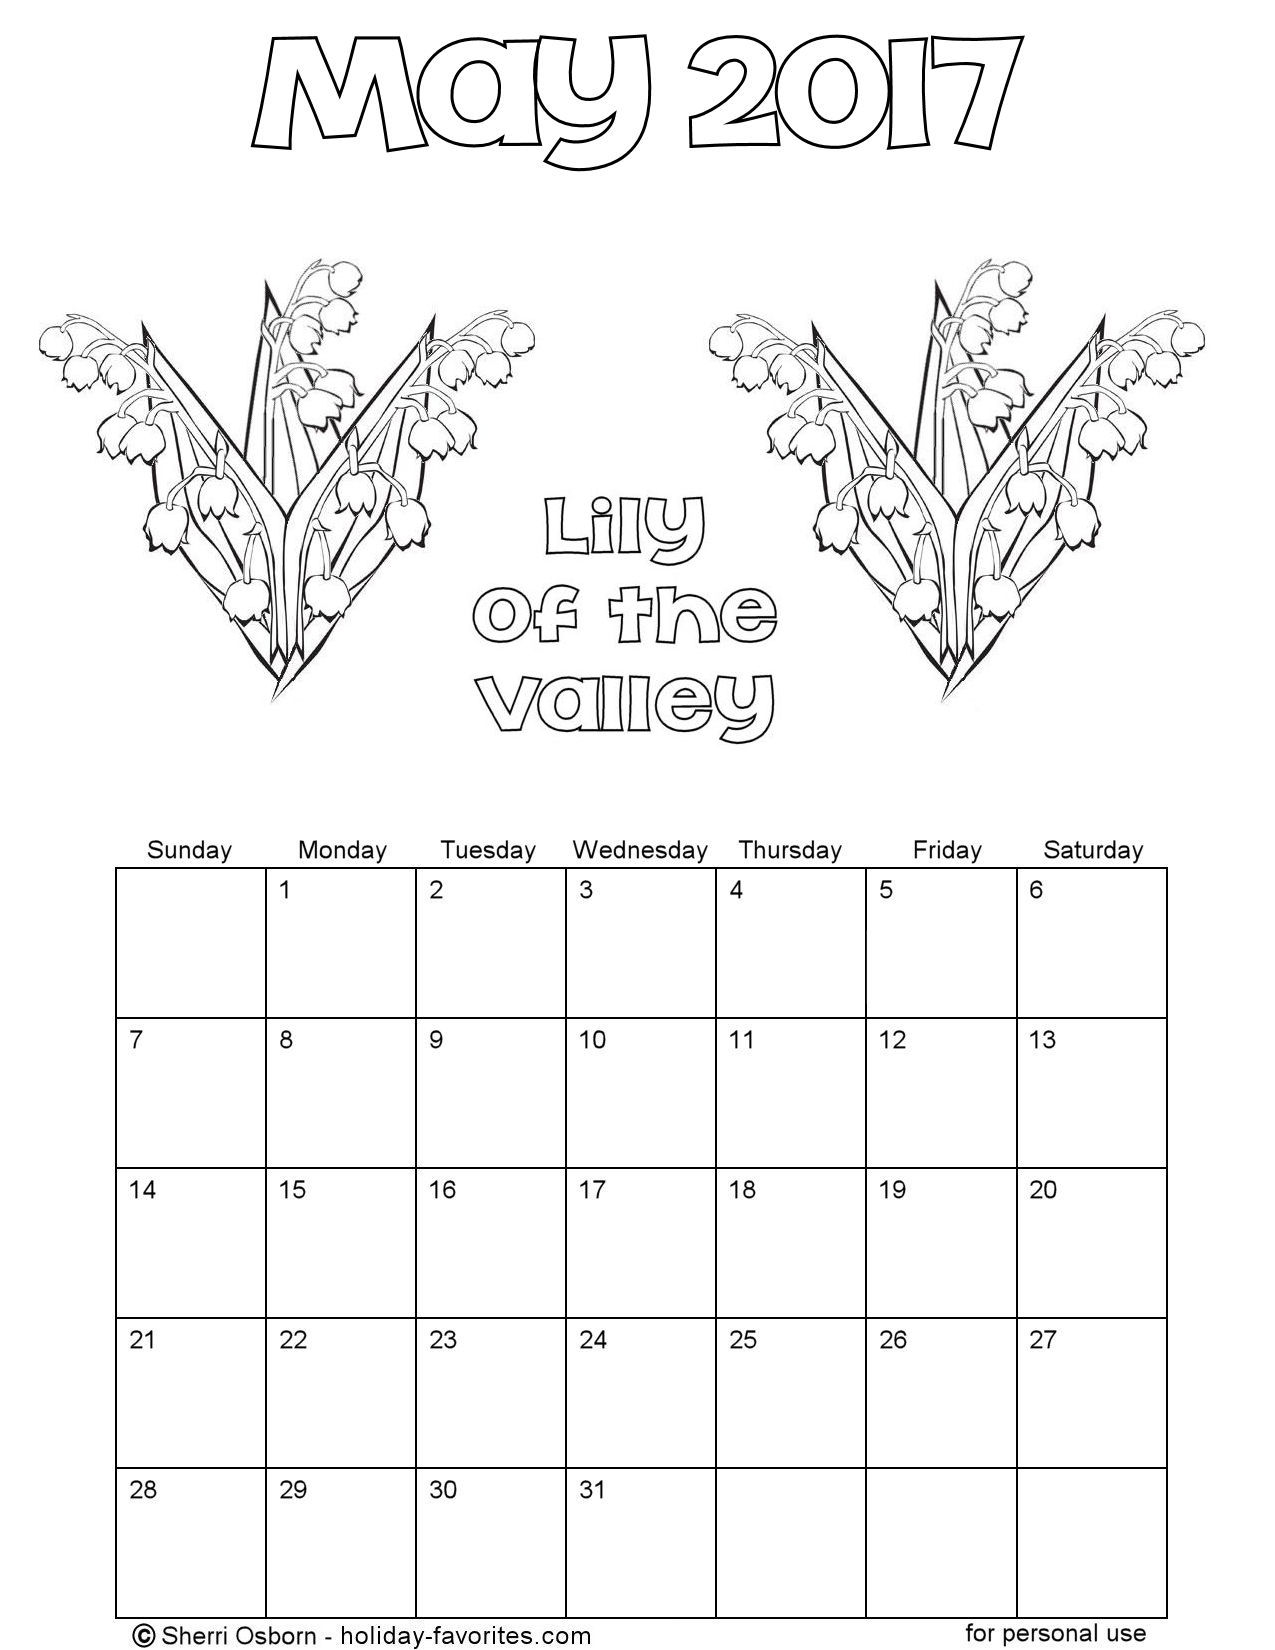 May 2017 Lily-of-the-Valley Calendar Page